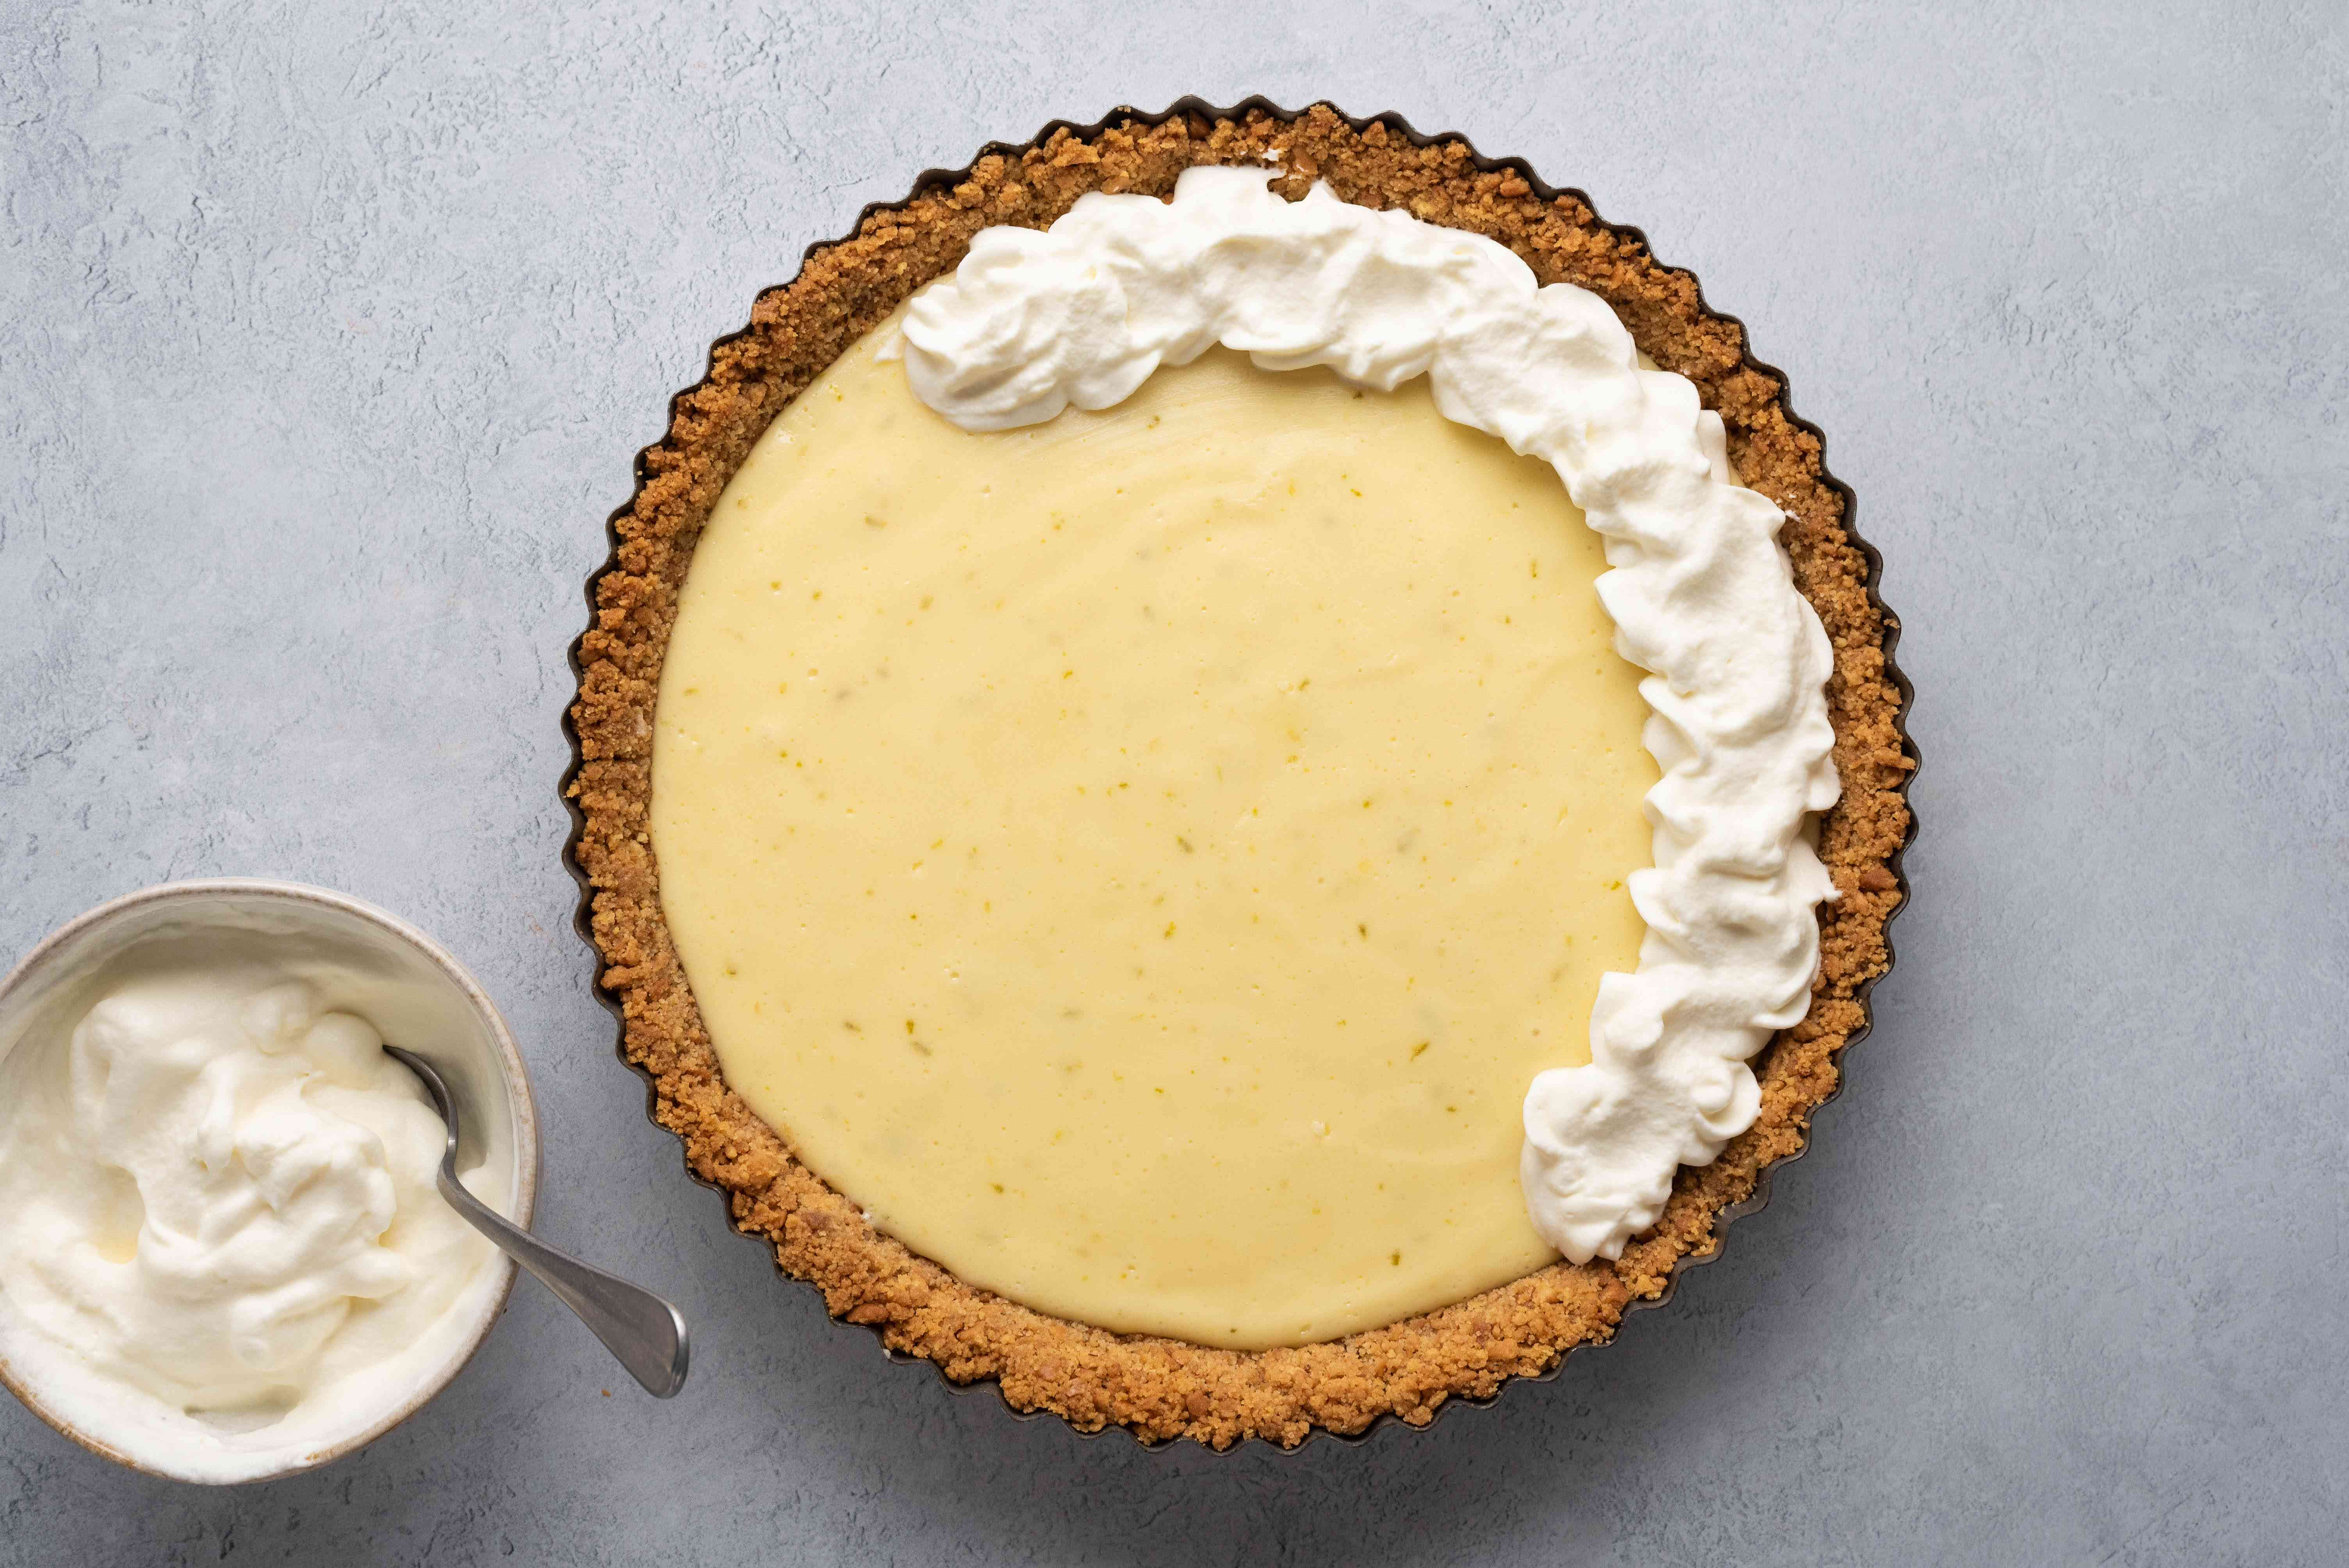 Serve the Easy Key Lime Pie with a dollop of whipped cream